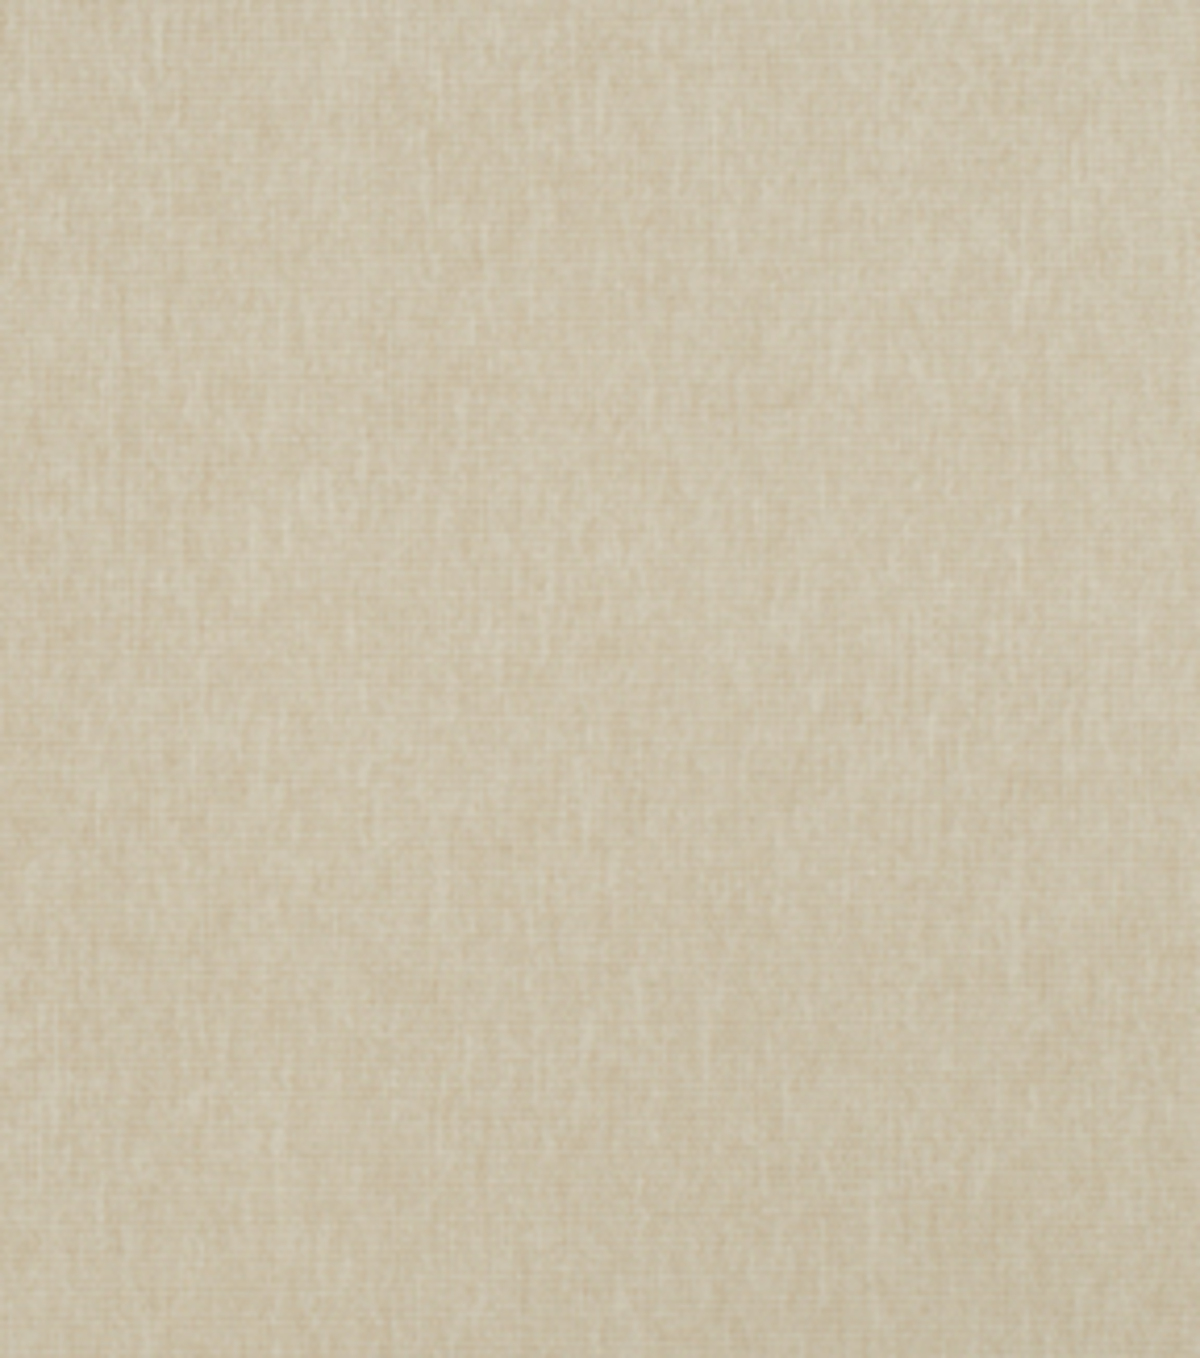 Home Decor 8\u0022x8\u0022 Fabric Swatch-Eaton Square Depot Natural